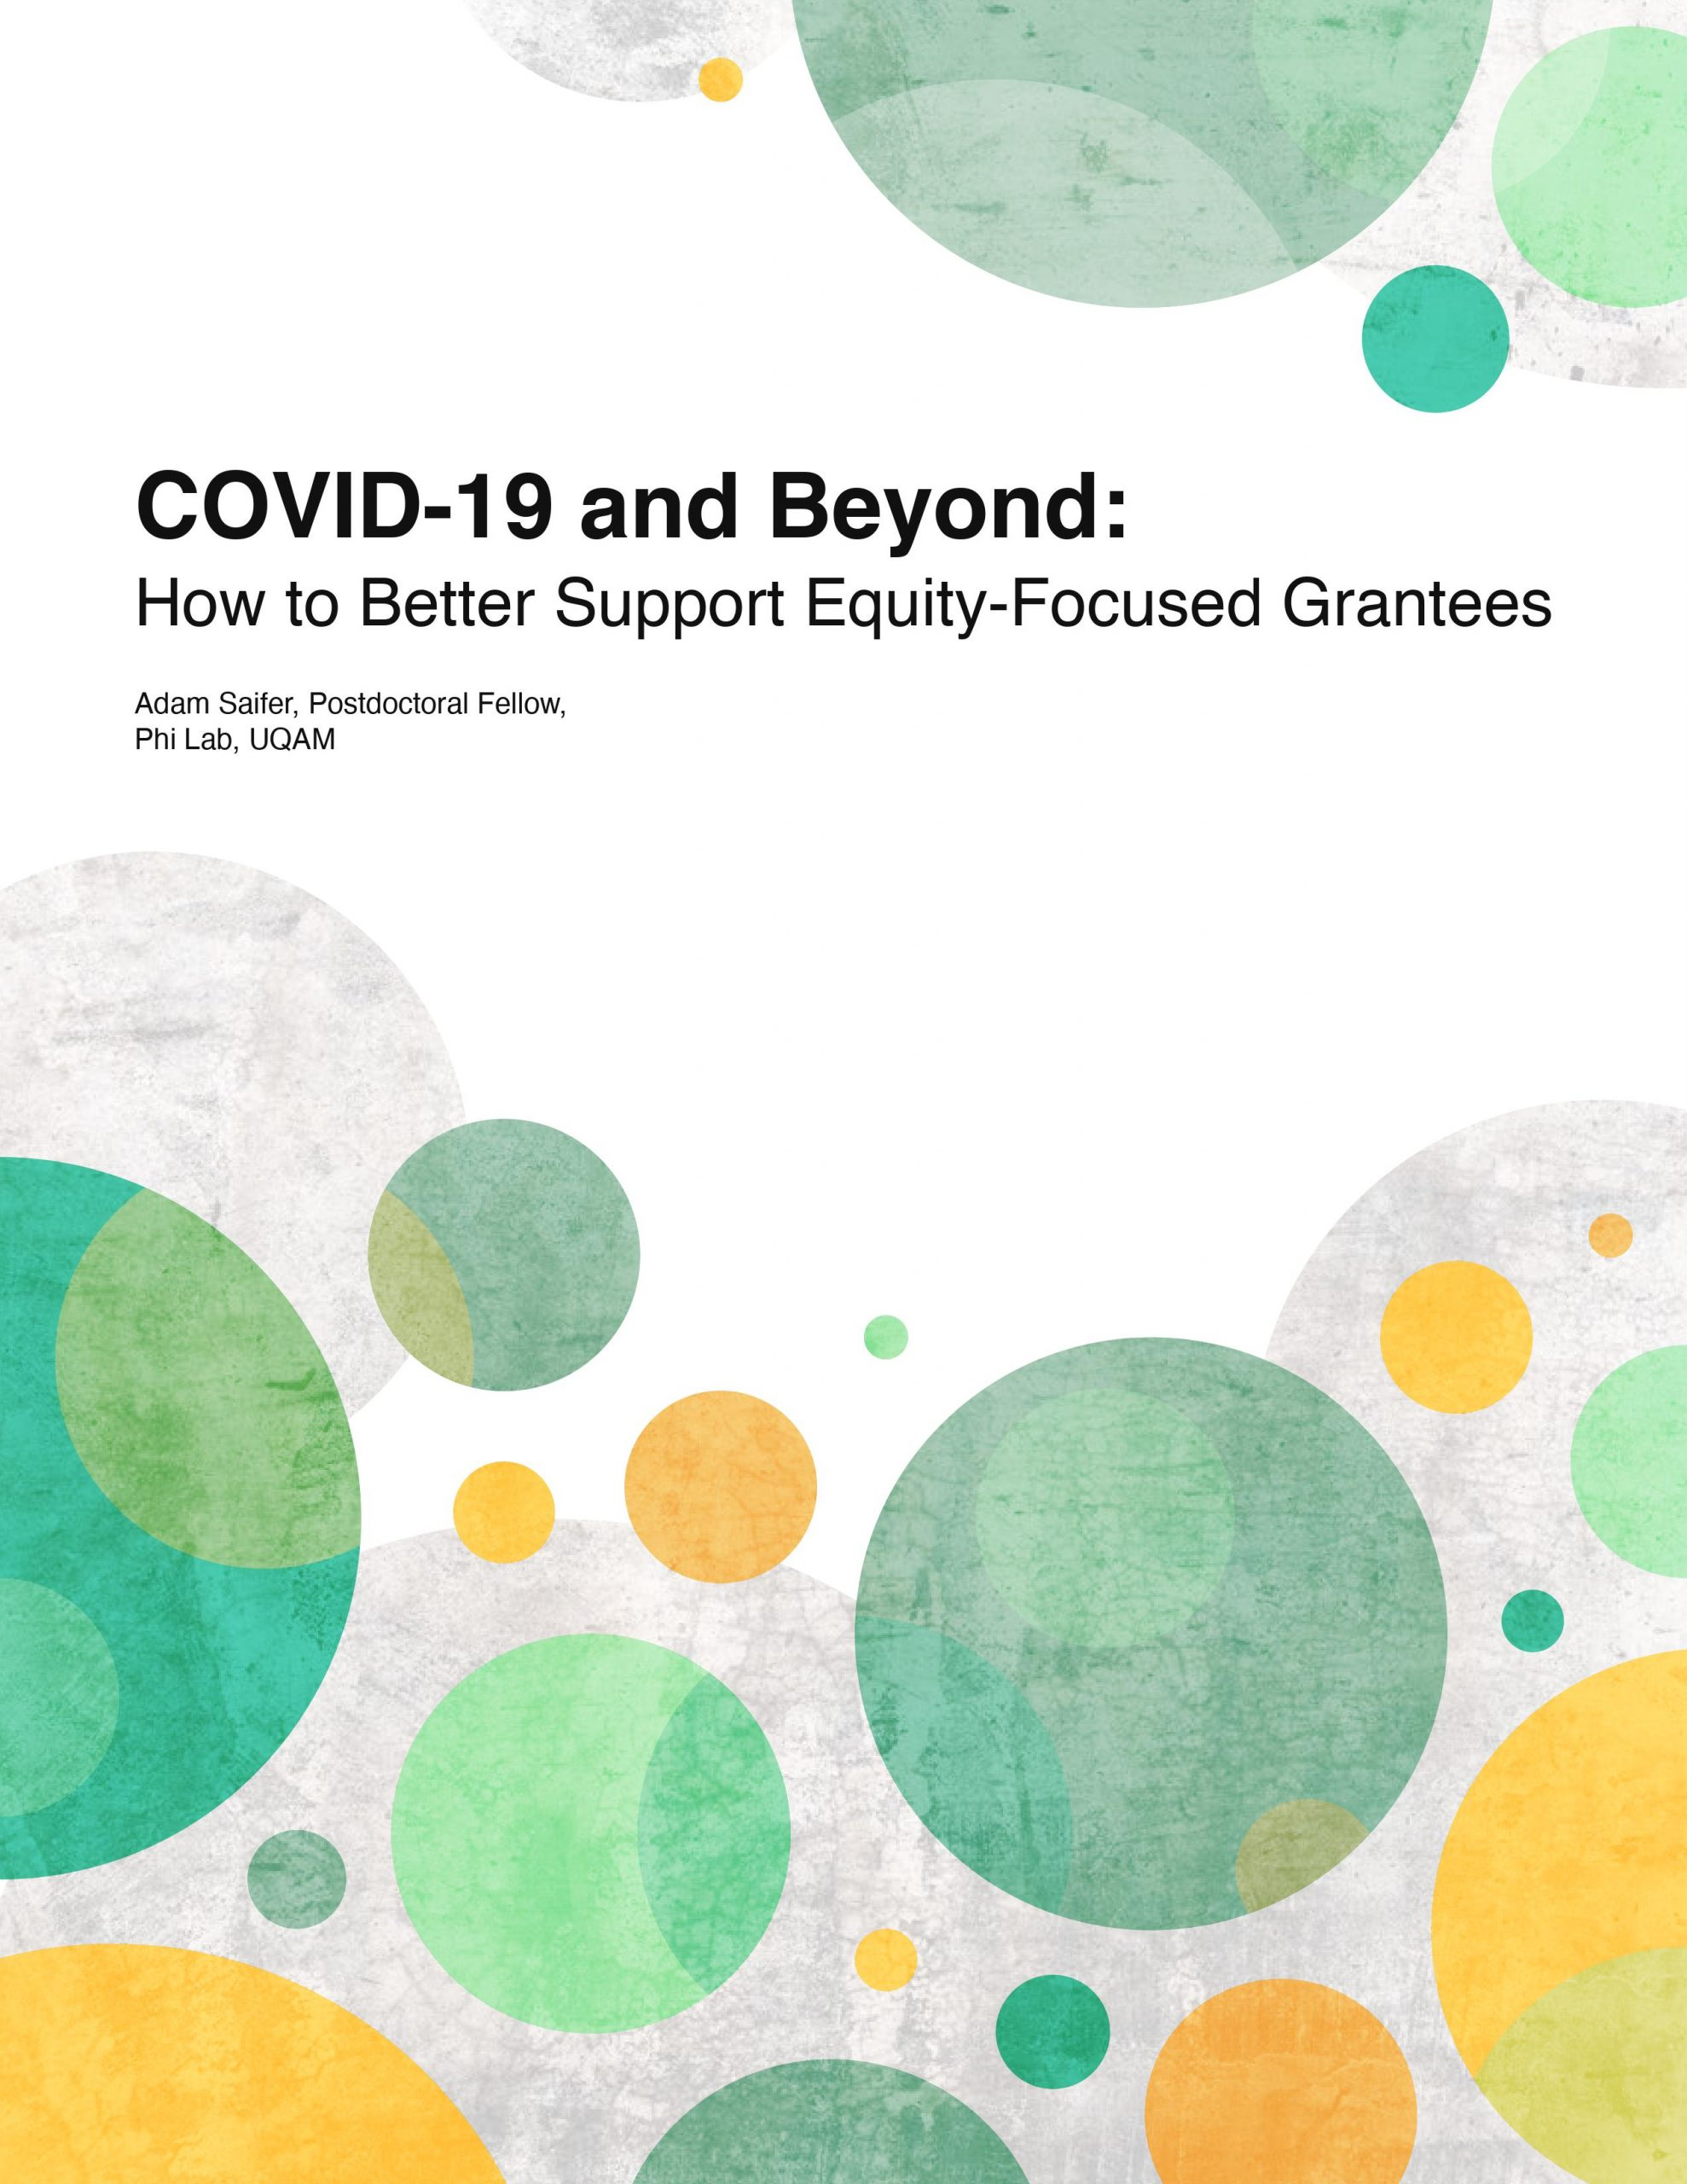 COVID-19 and Beyond-How to Better Support Equity-Focused Grantees